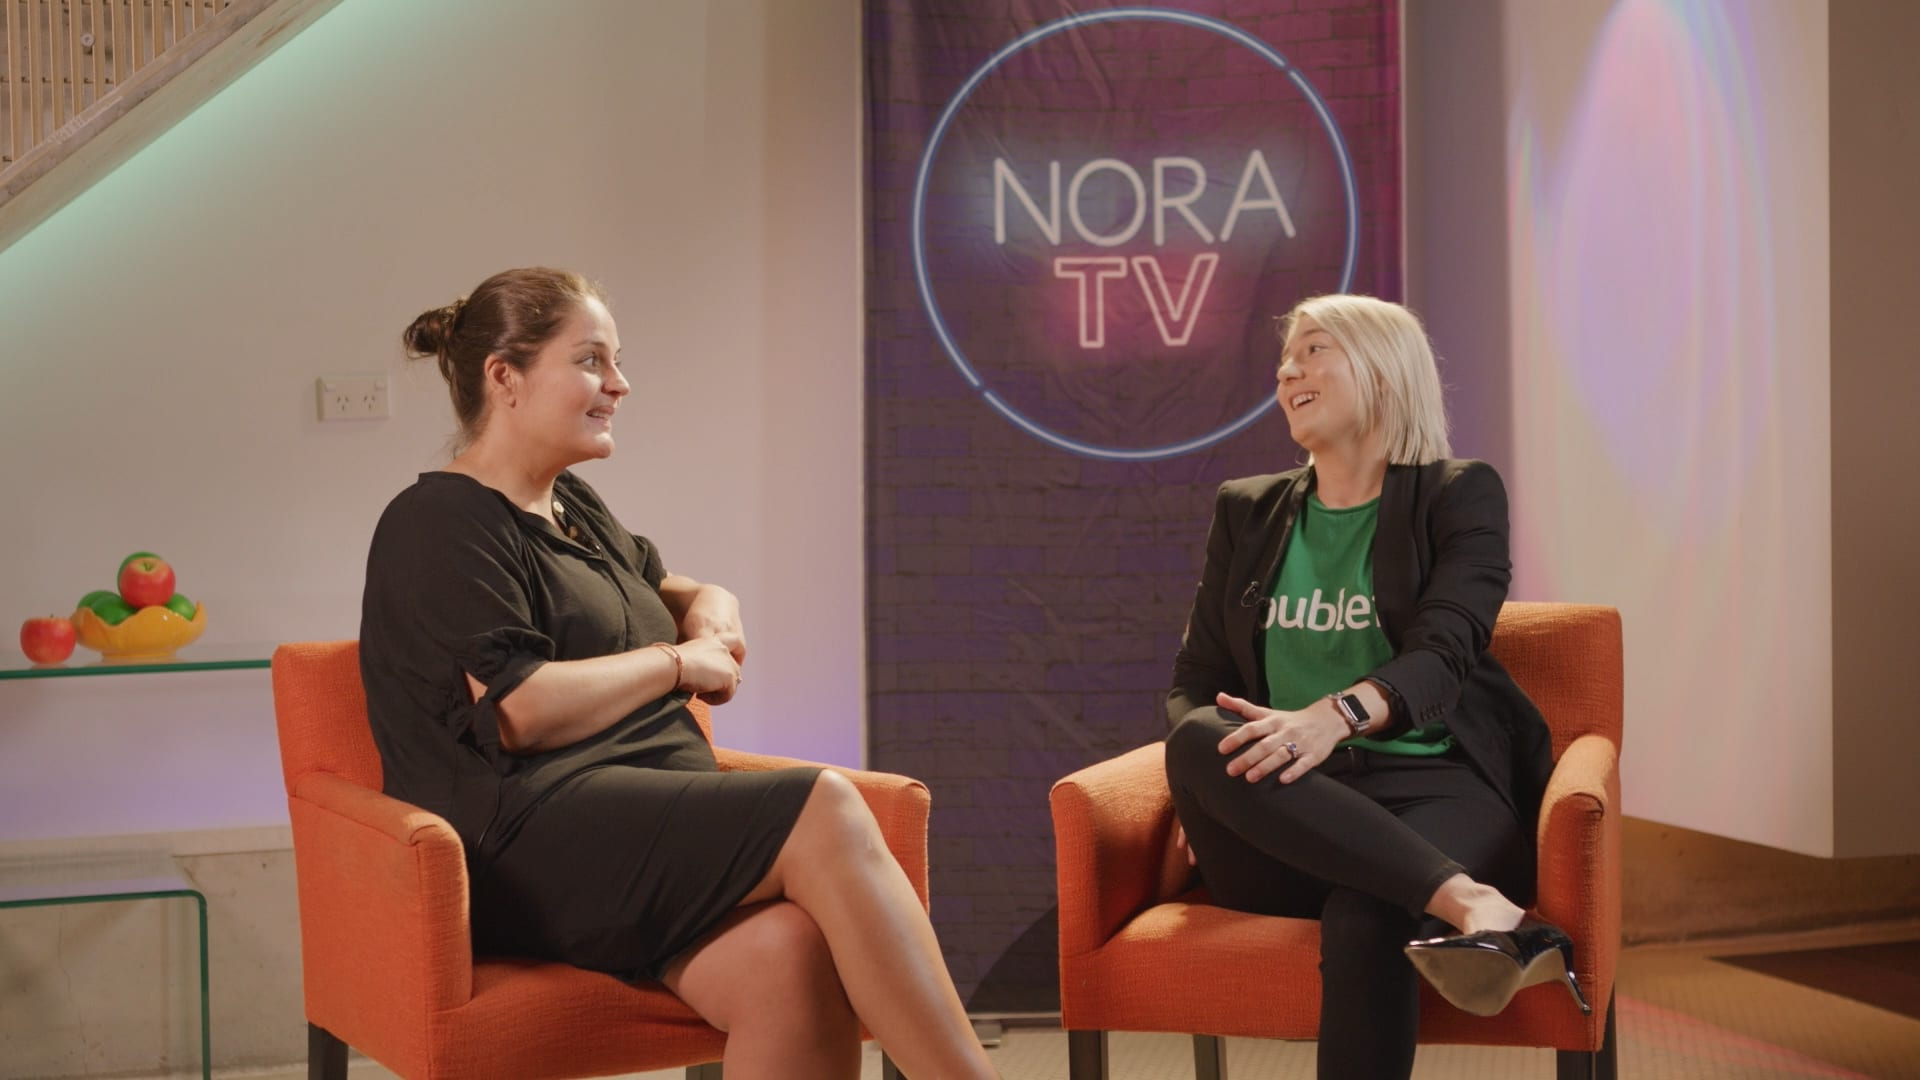 Roubler interview on NORA TV 2